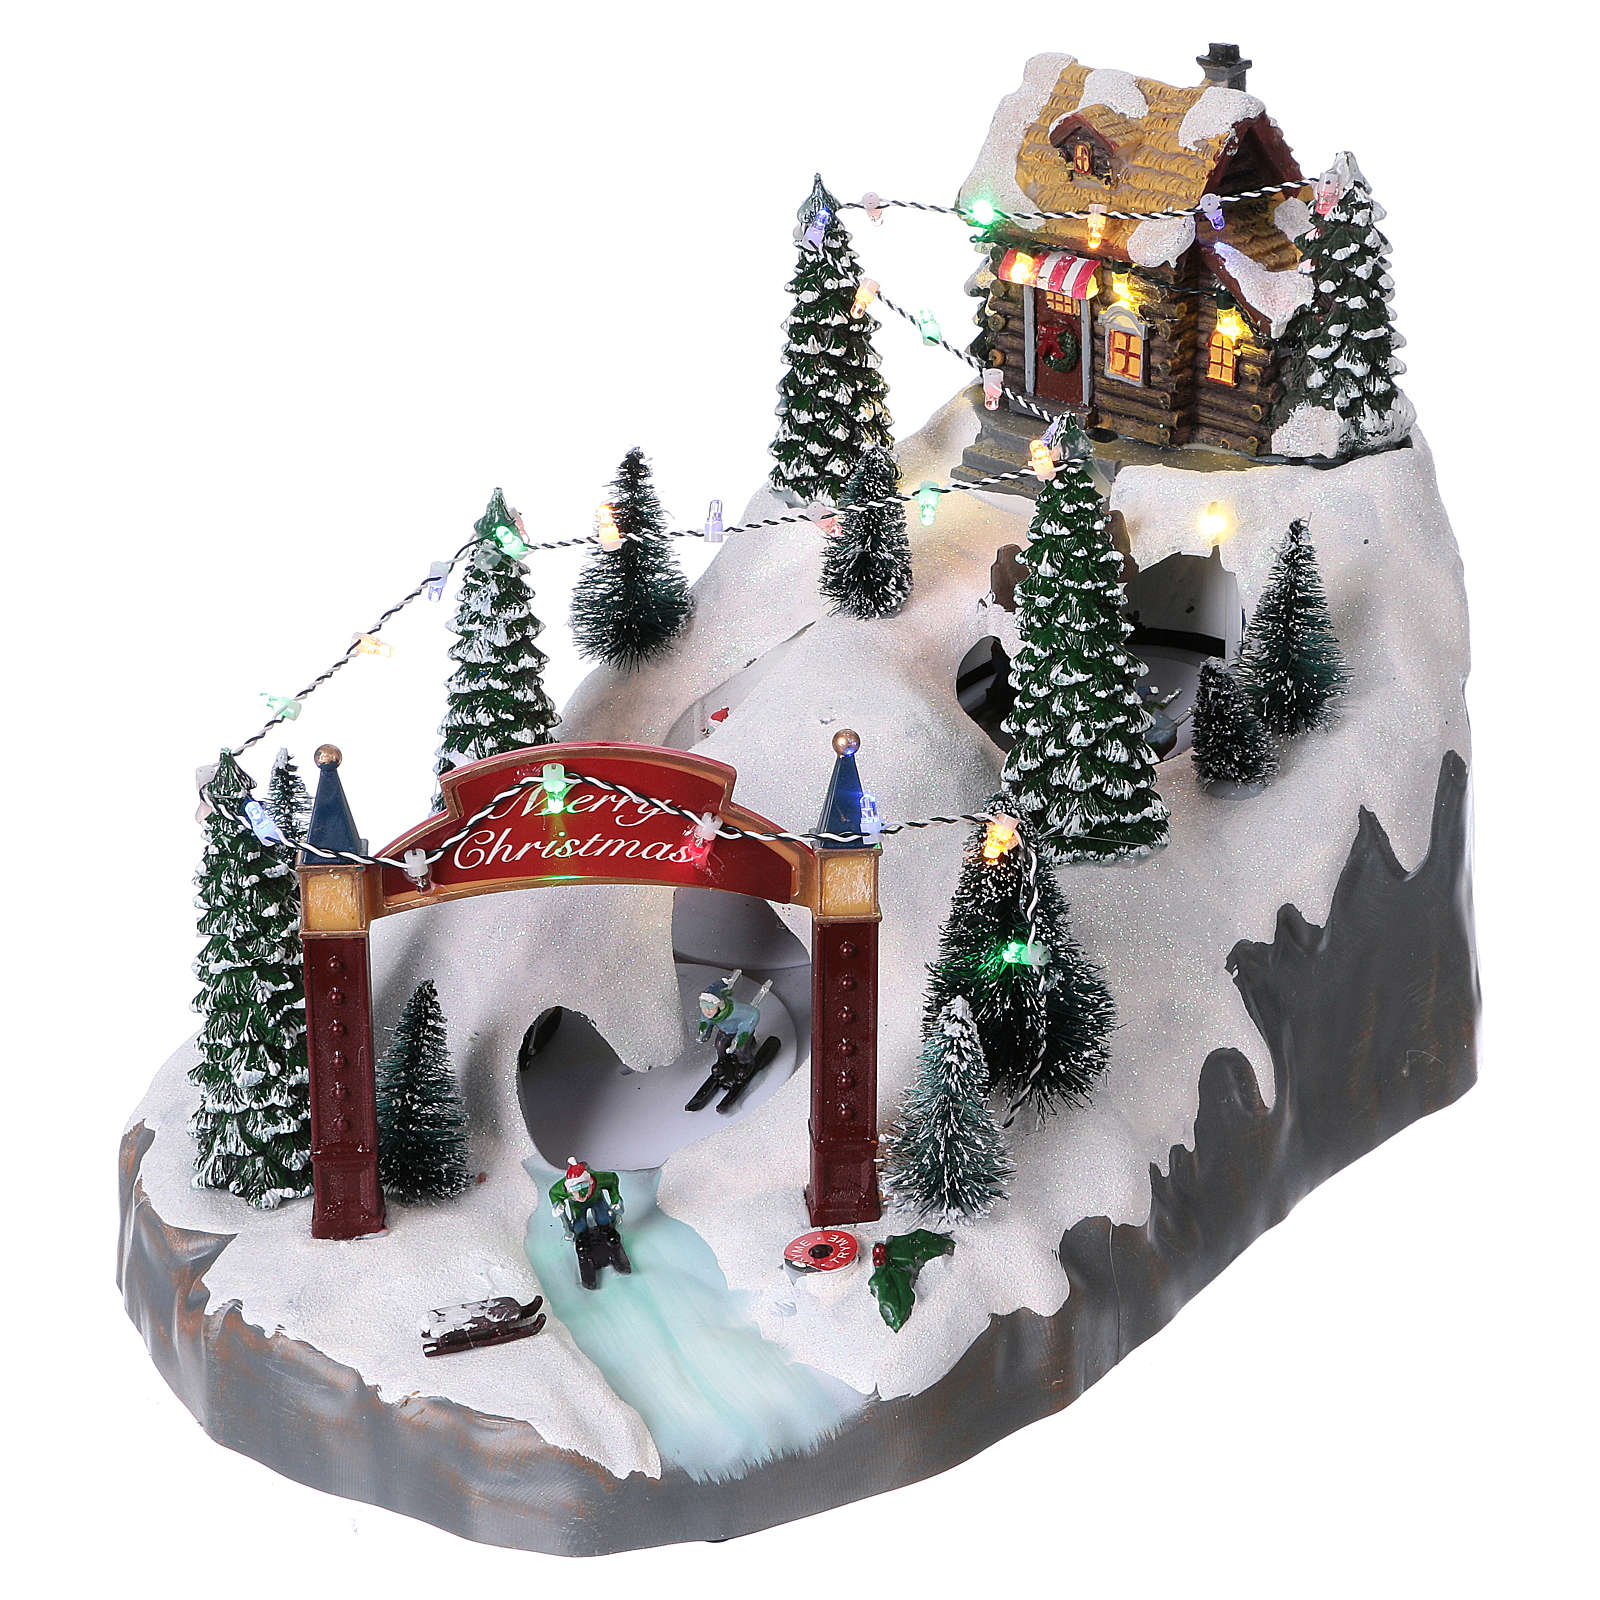 Christmas Holiday Village with In-Motion Skiers 25x25x35 cm Battery and Power Operated 3